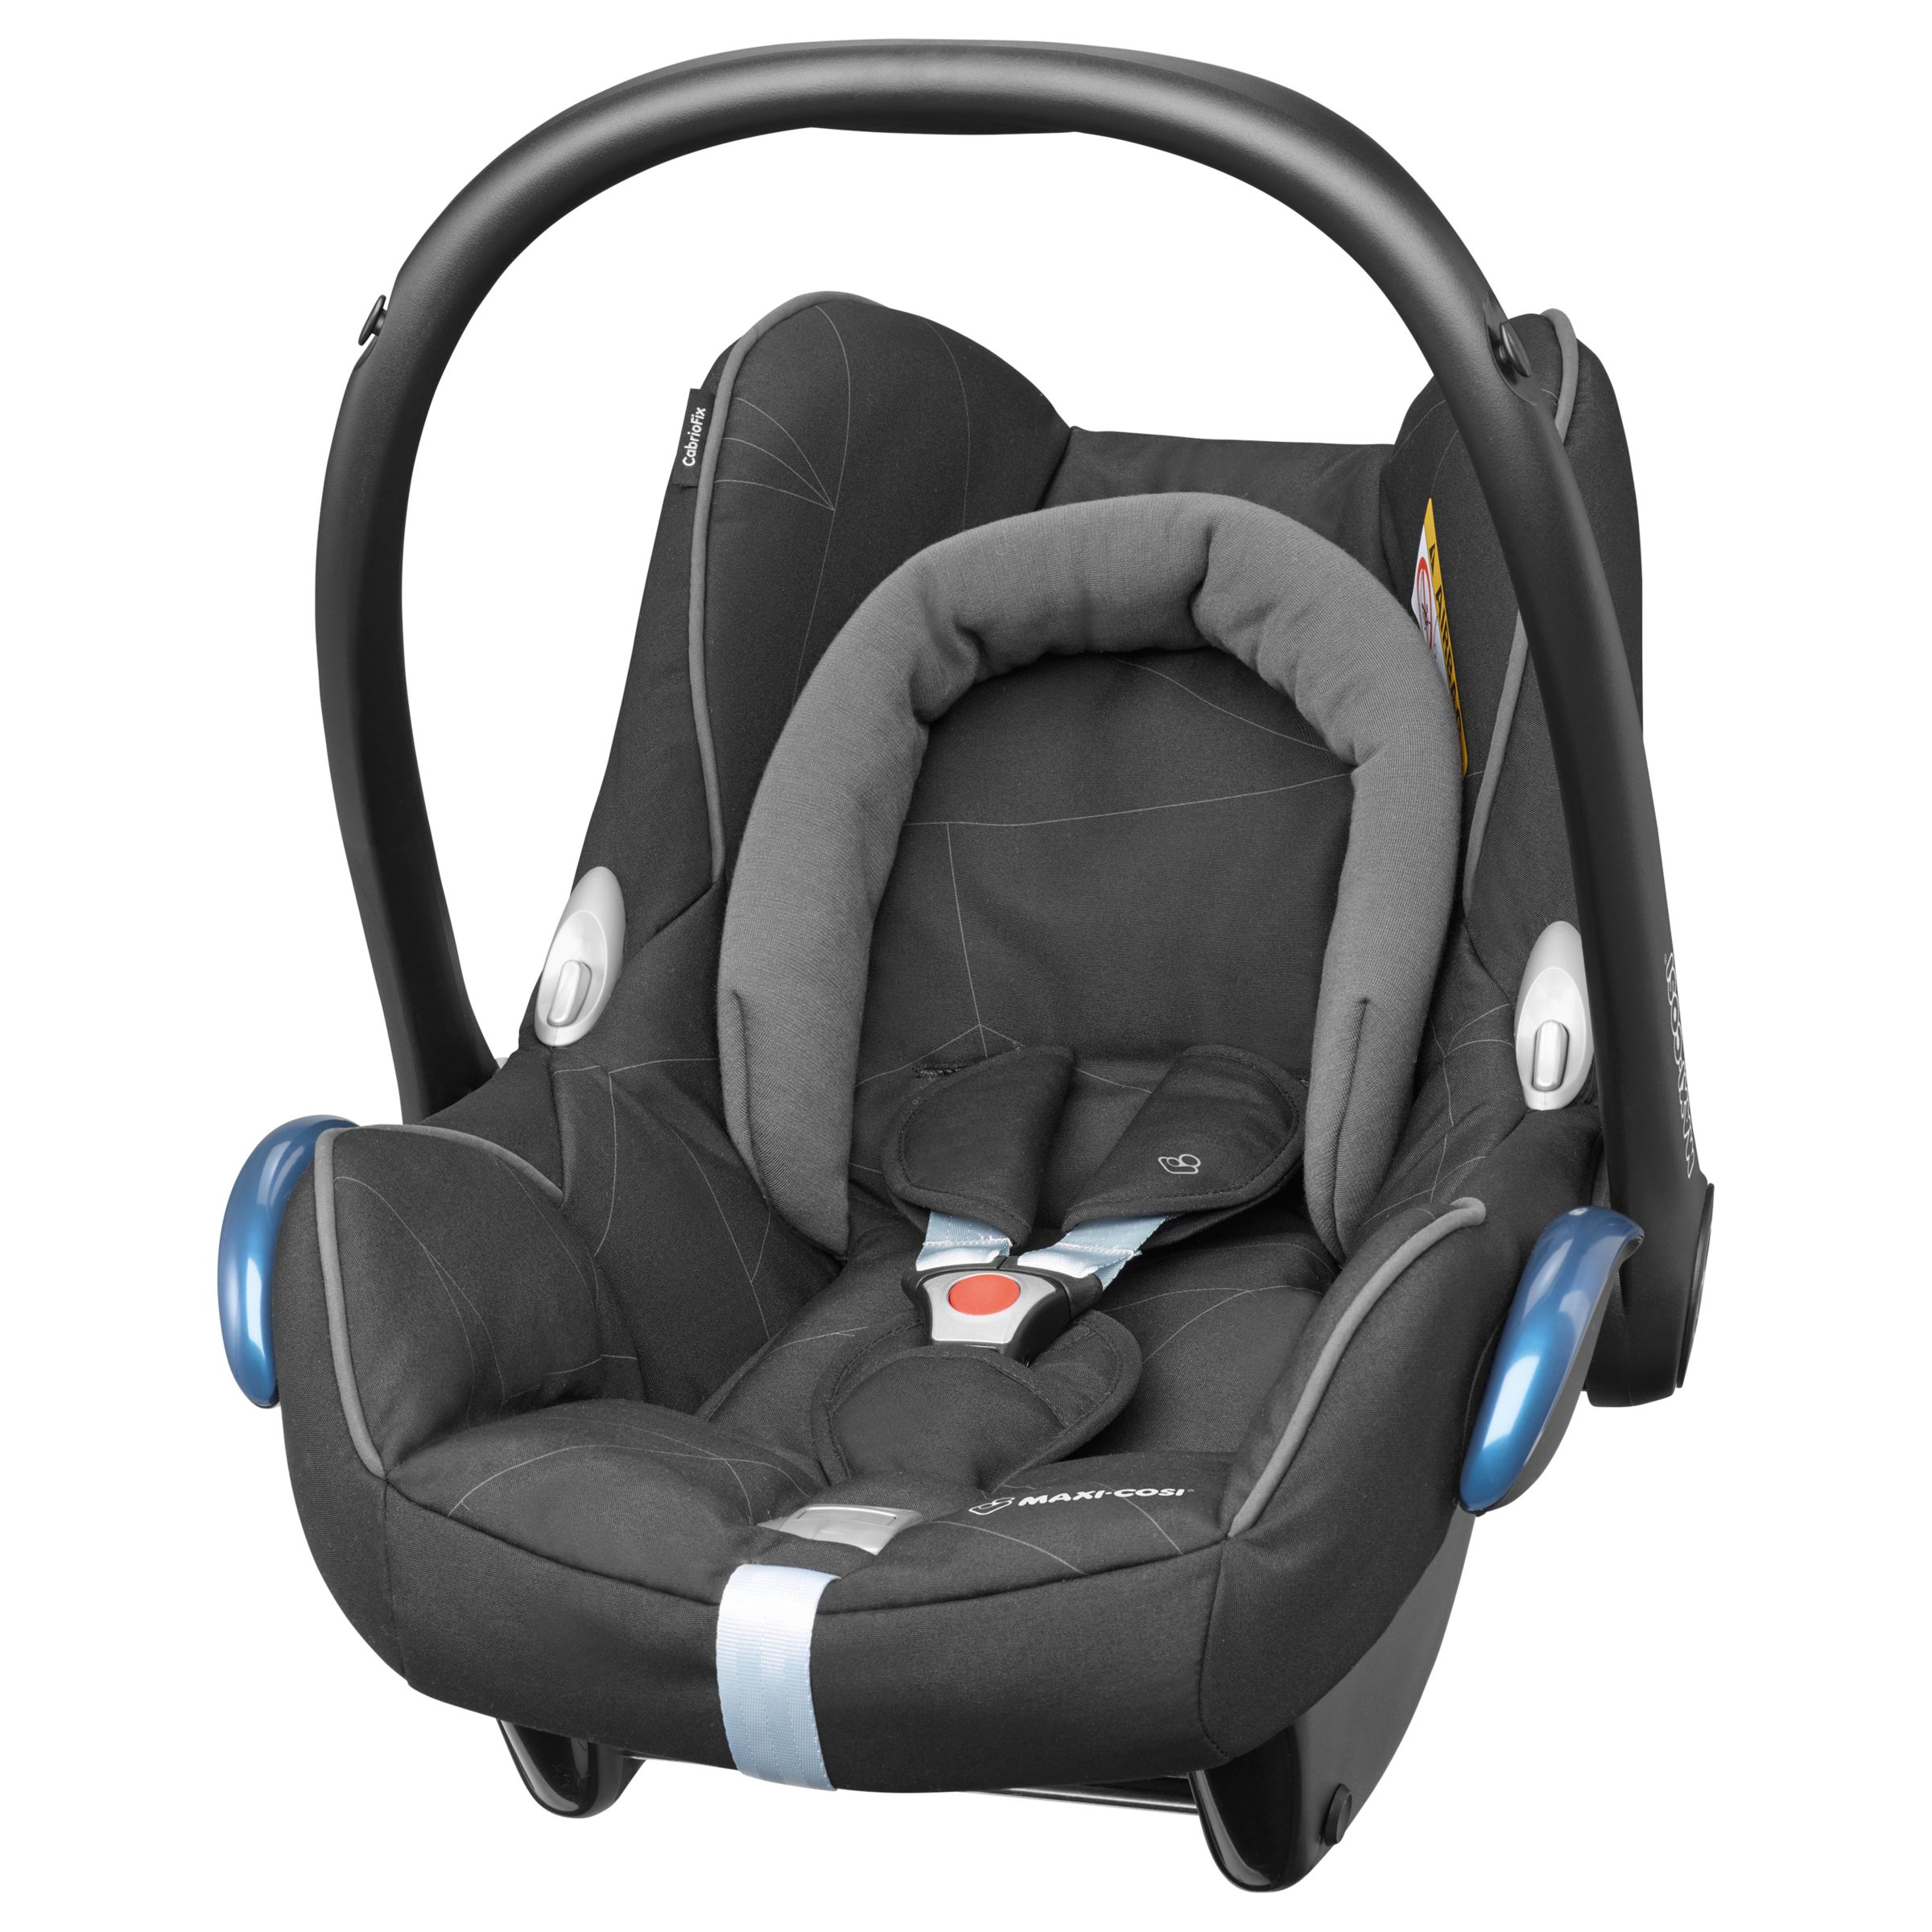 maxi cosi familyfix base group 0 1 car seat base at john lewis. Black Bedroom Furniture Sets. Home Design Ideas